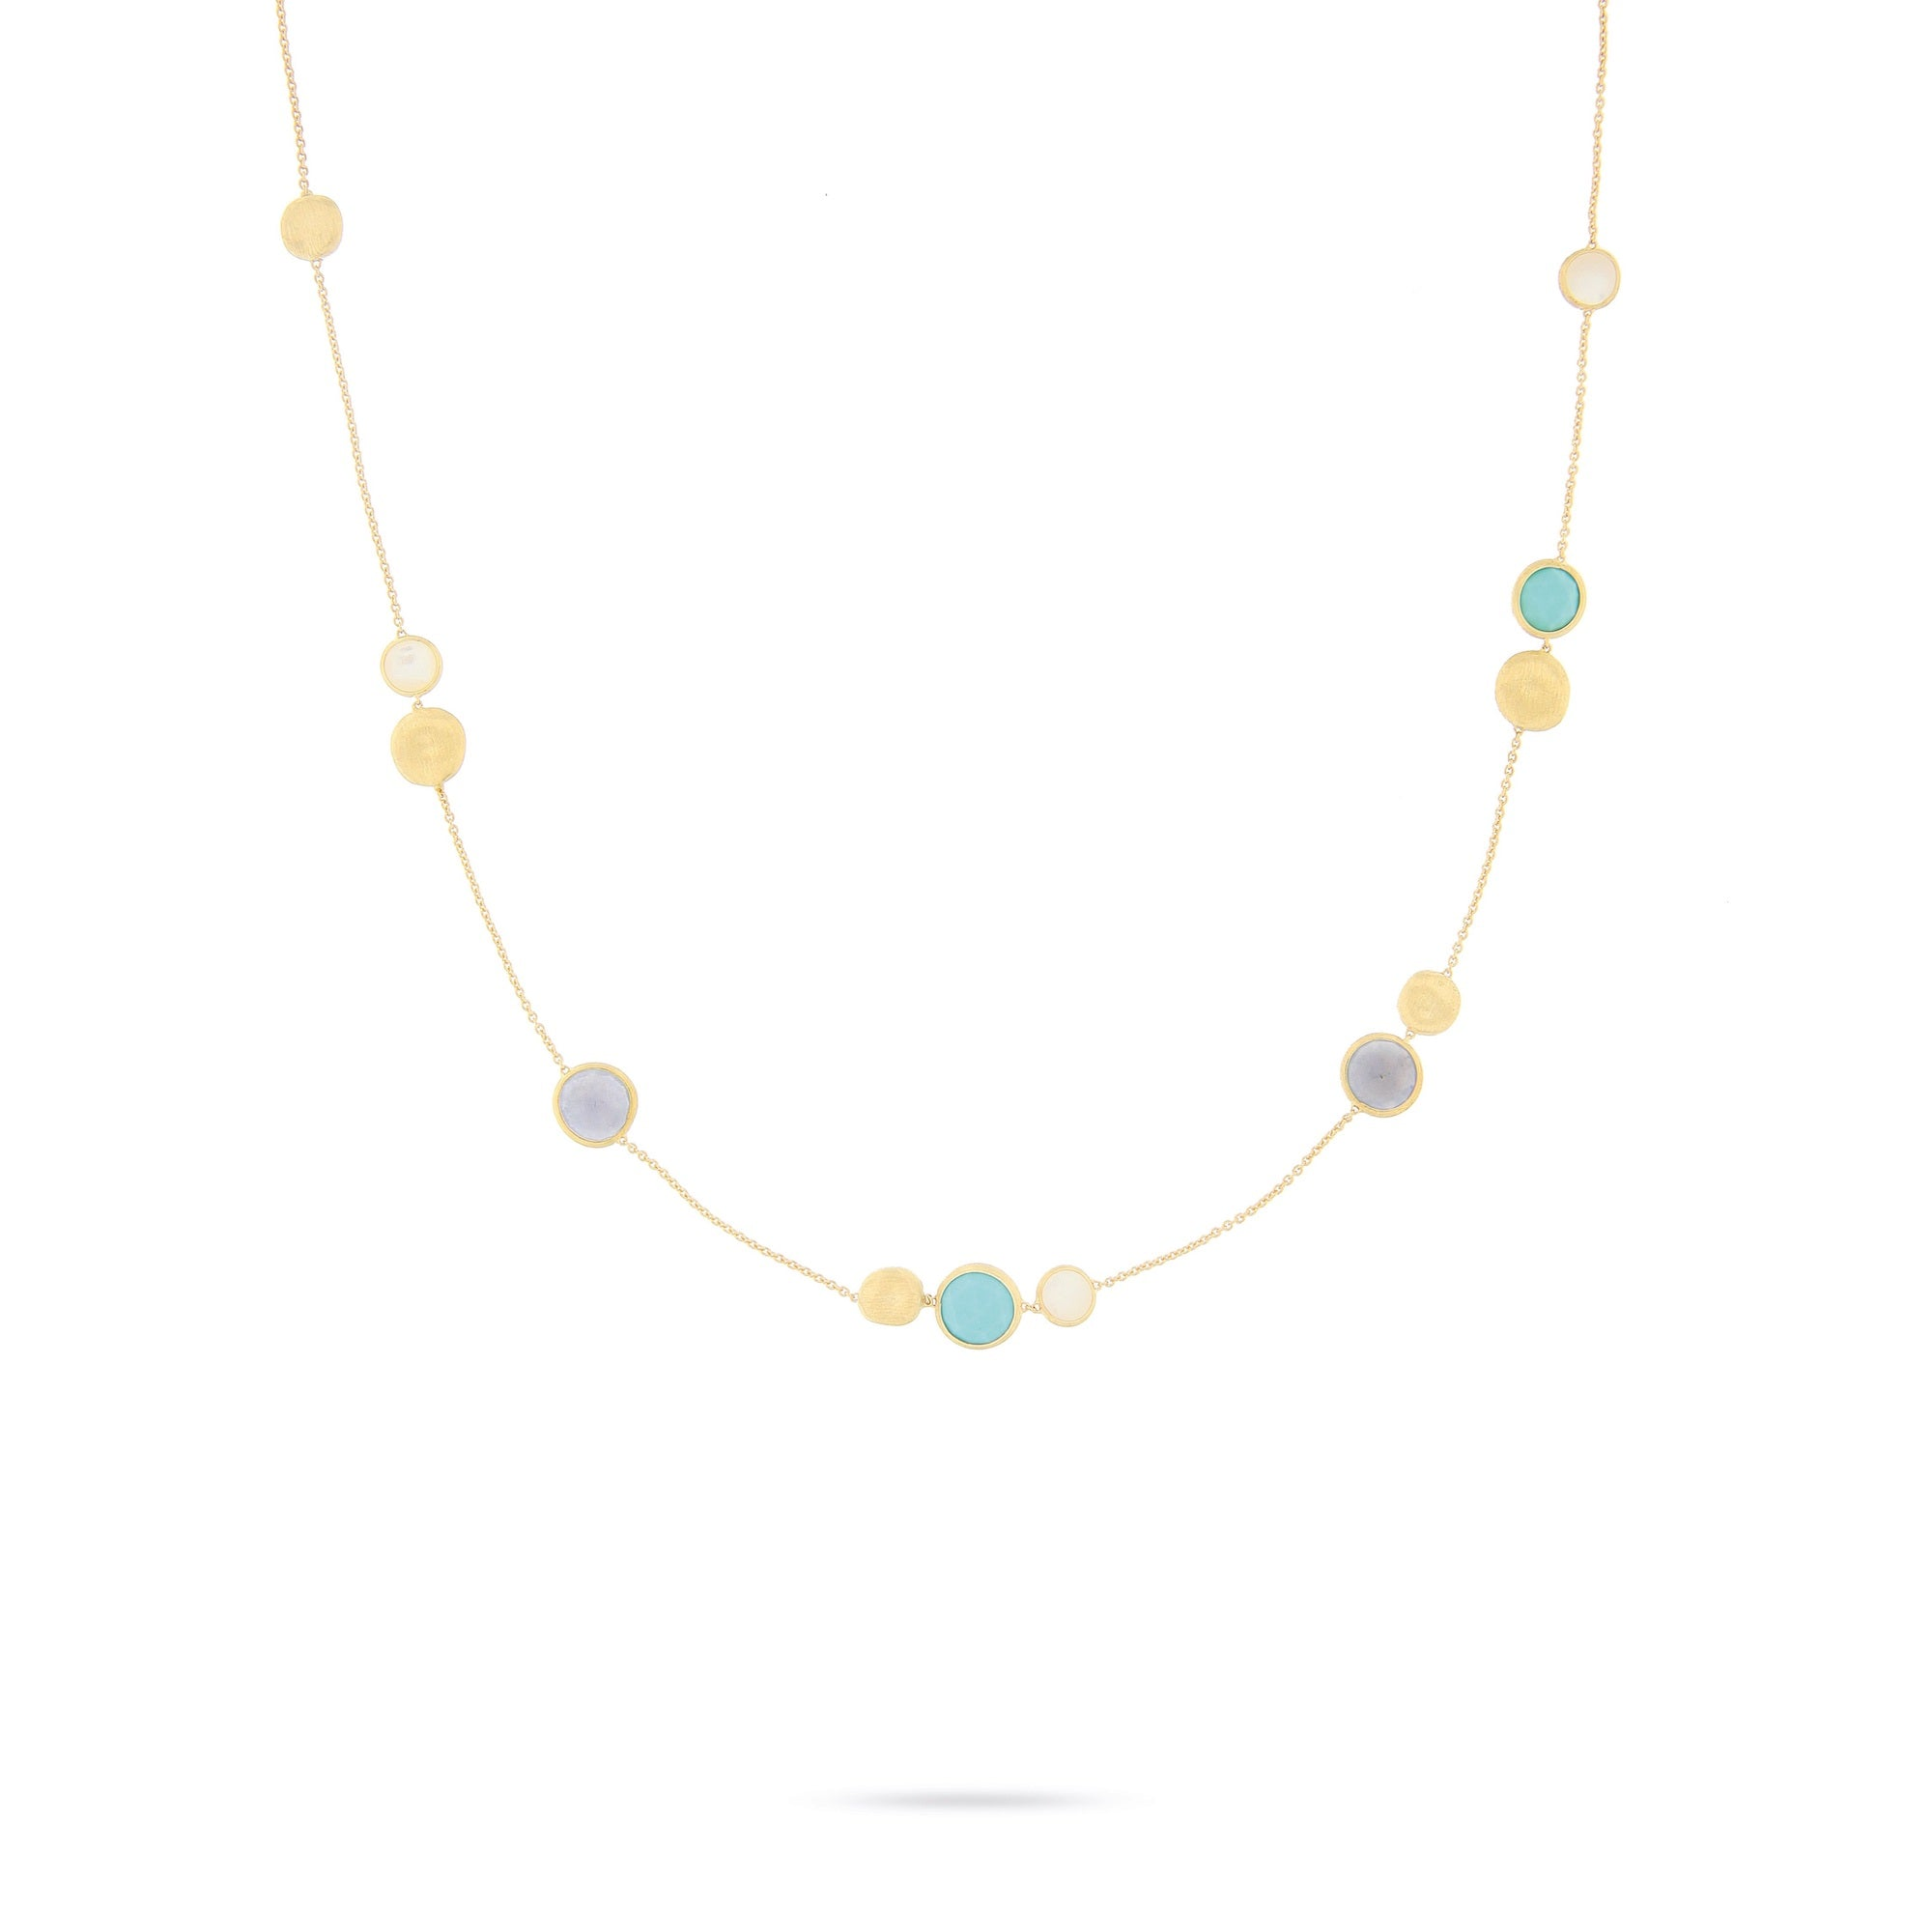 18K Yellow Gold & Mixed Blue Topaz Necklace